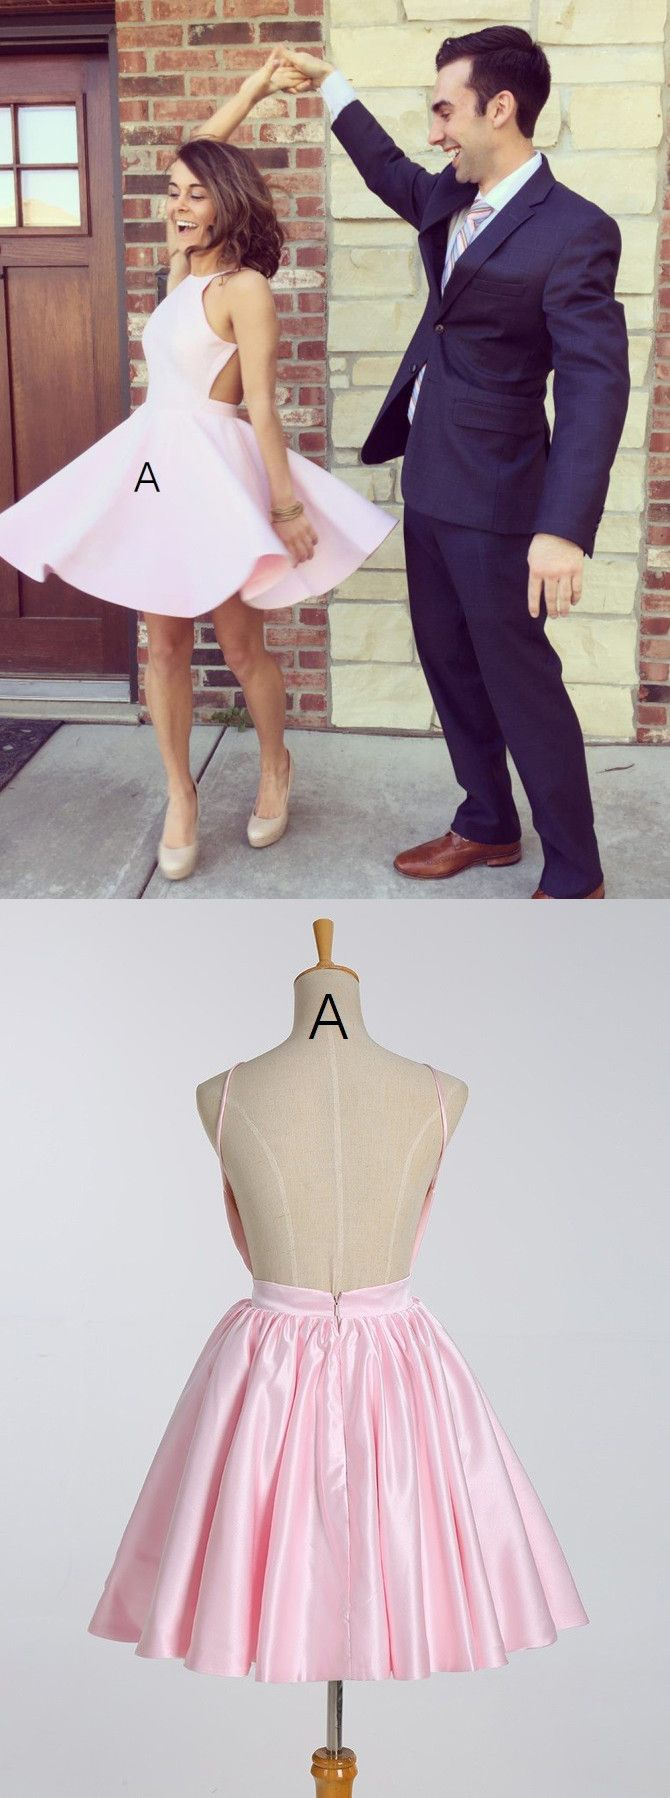 2016 short pink homecoming dresses, backless homecoming dresses, cheap homecoming dresses under $70, cute homecoming dresses, formal evening dresses                                                                                                                                                     More